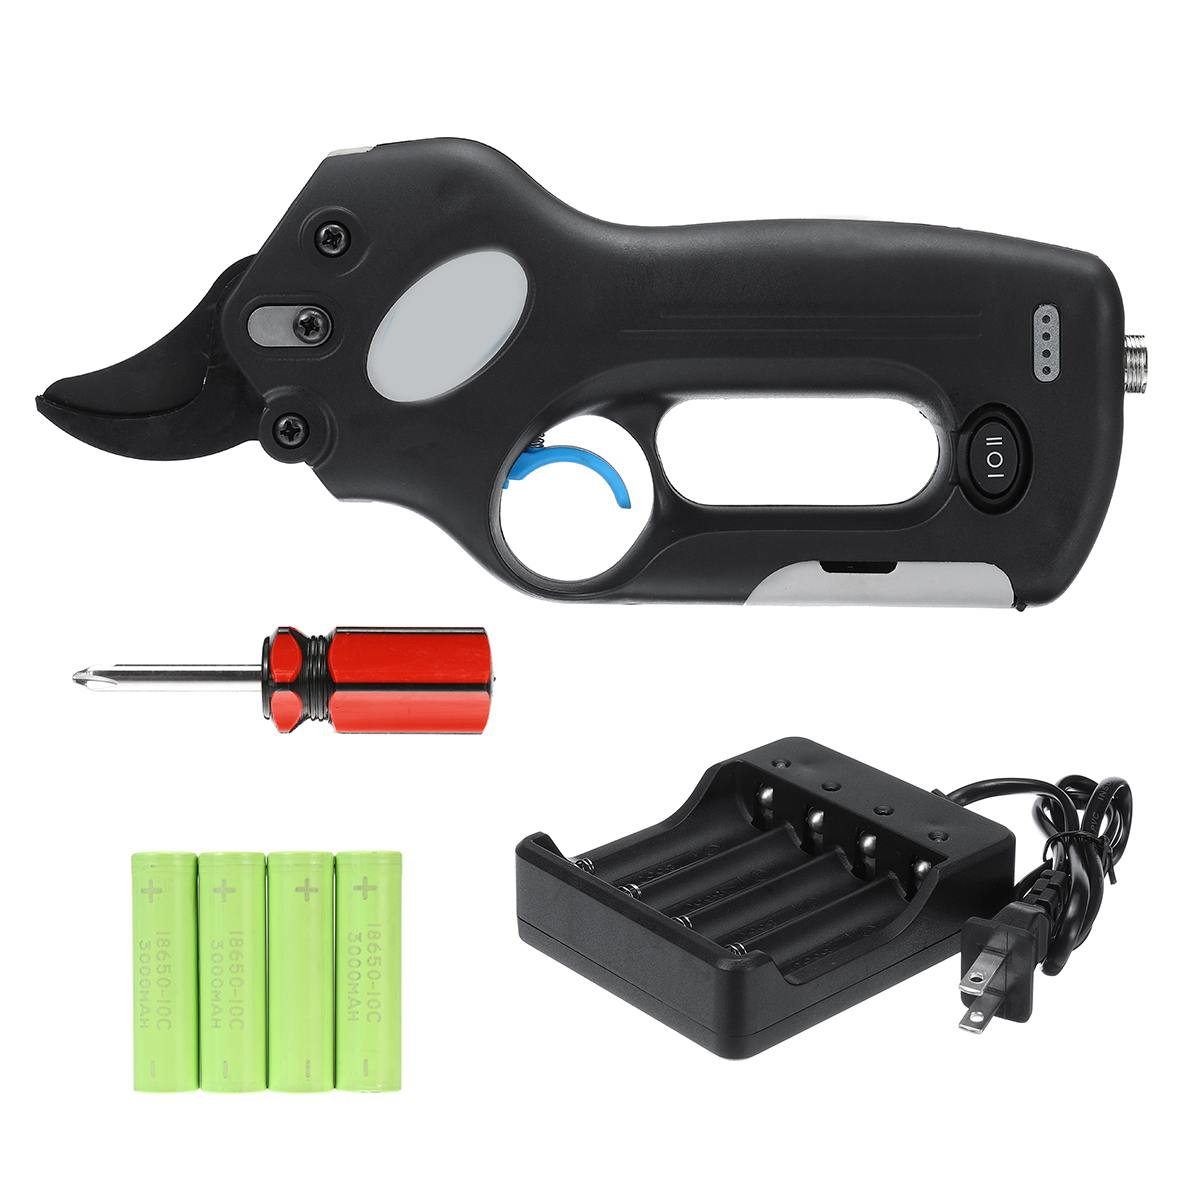 12V Wireless Electric Rechargeable Garden Scissors for Pruning Branches and stems with 4 Li-ion Battery 1